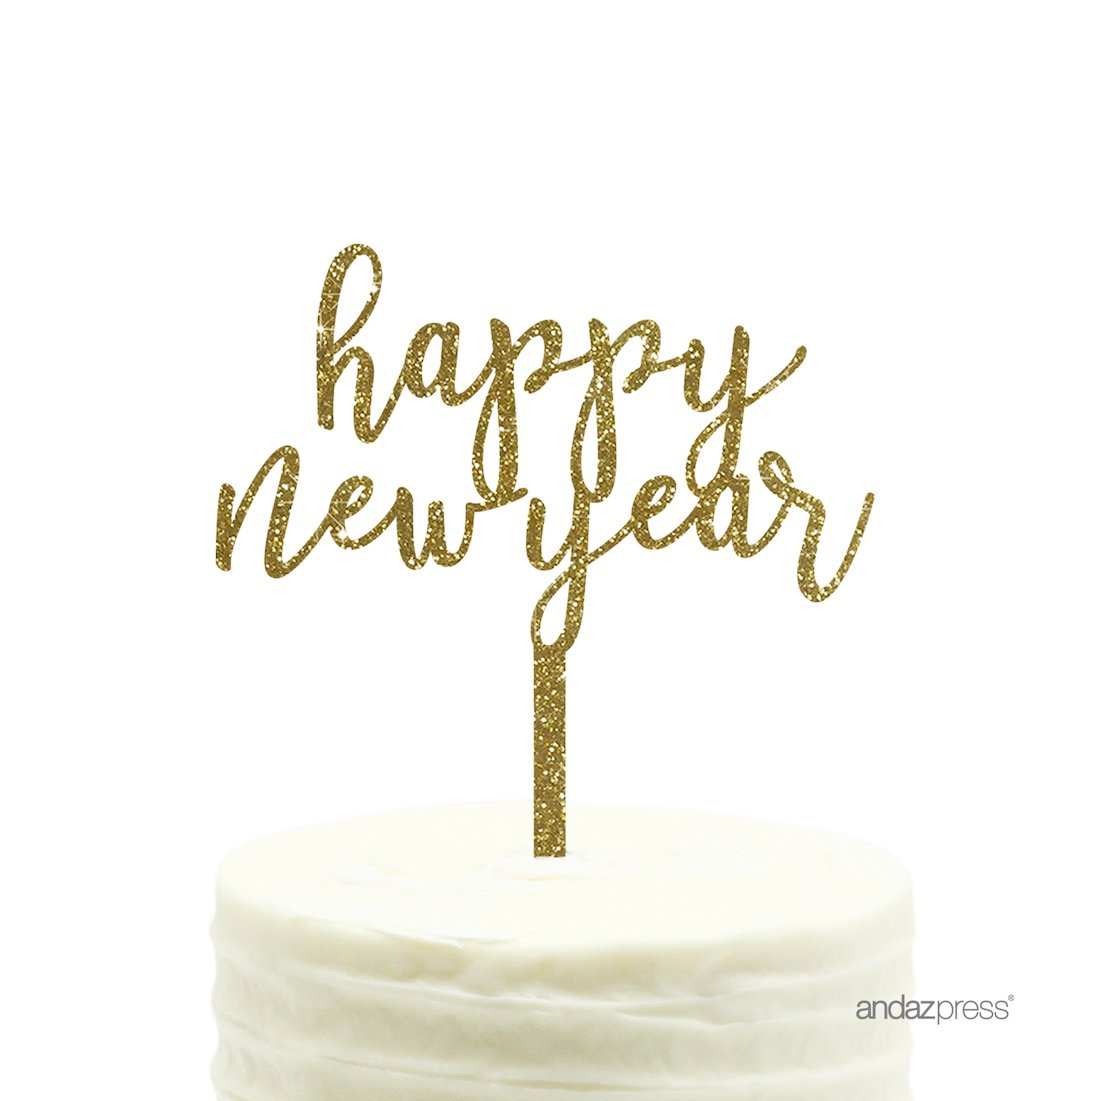 Andaz Press Holiday Acrylic Cake Toppers, Gold Glitter, Happy New Year, 1-Pack, 2018 2019 2020